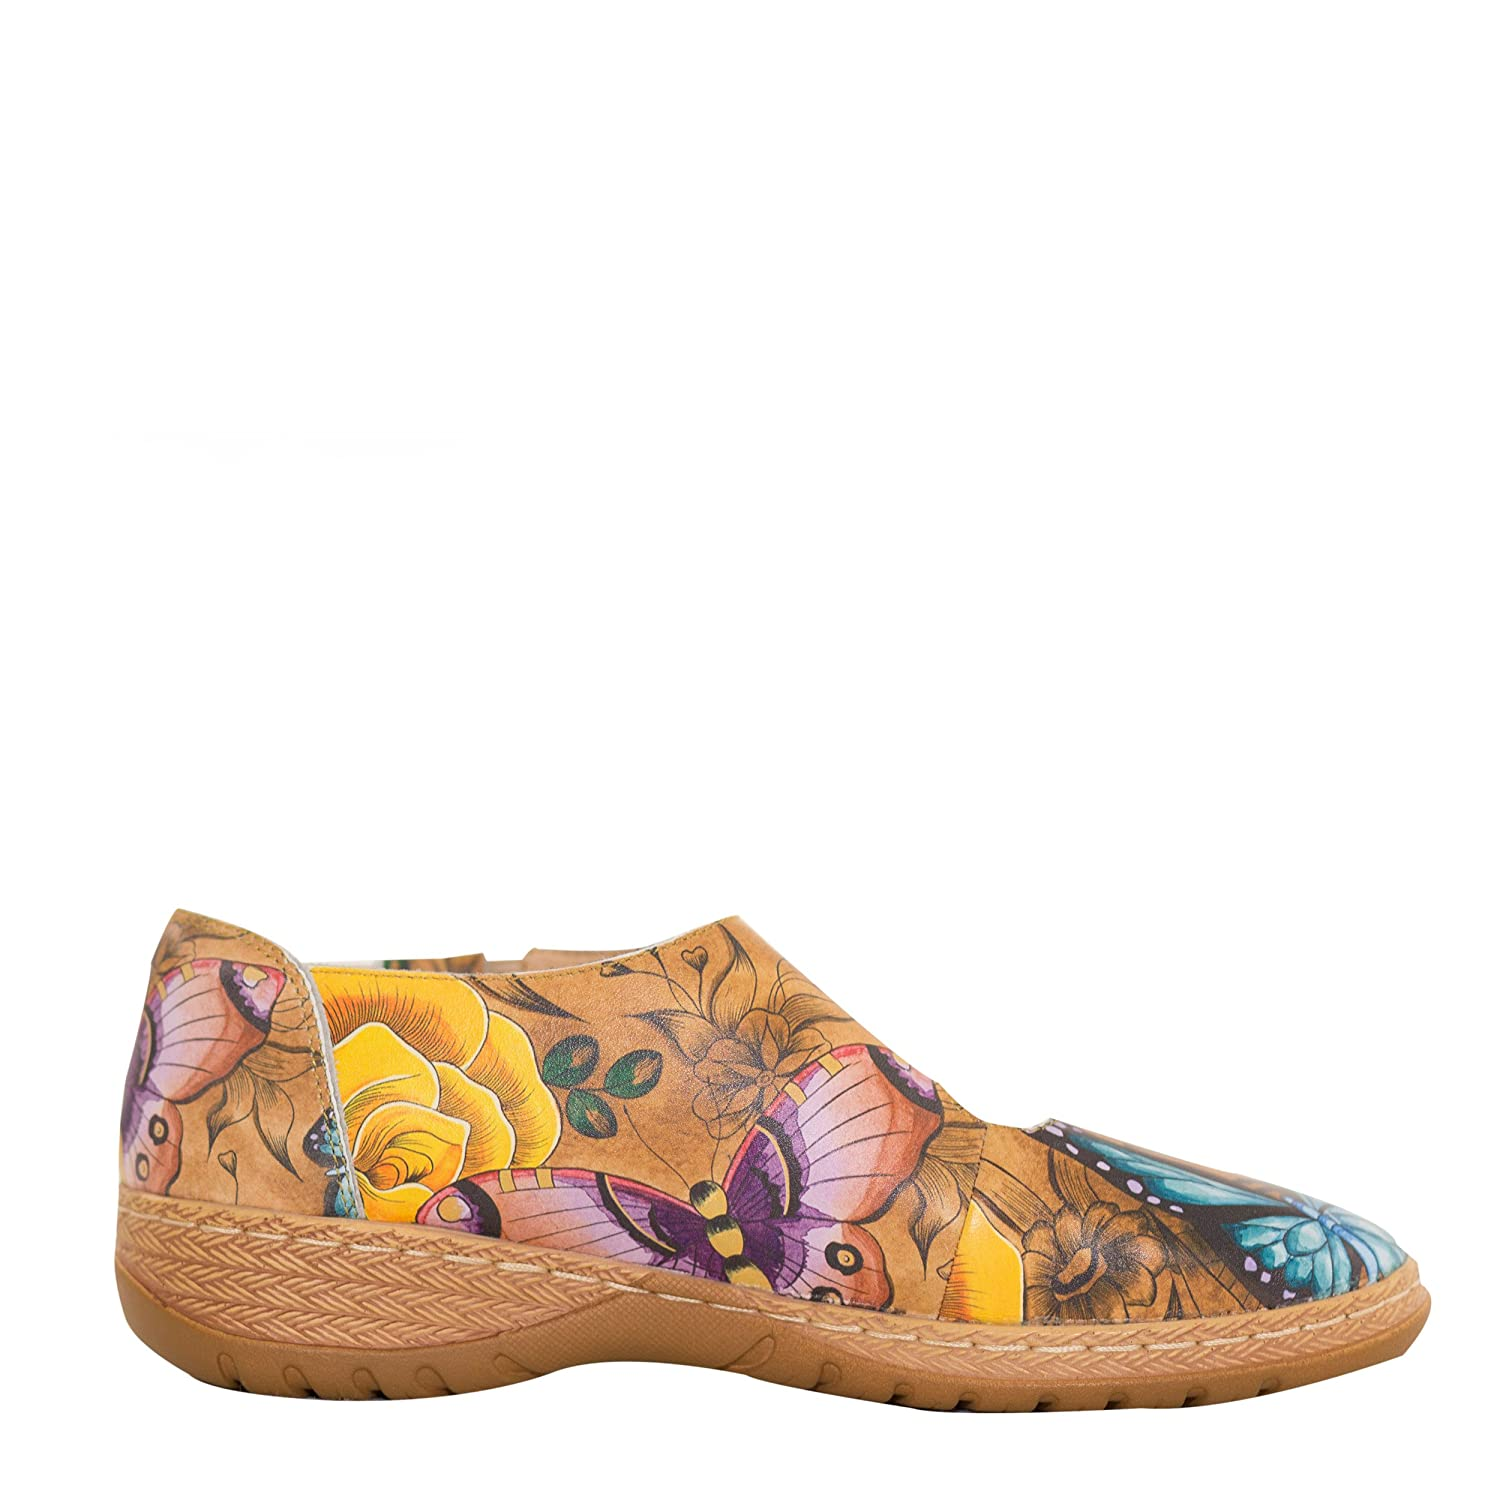 Anuschka Women's Mita Printed Leather Mary Jane,Lovely Leaves B07DB9HQRD 9 B(M) US|Floral Paradise Tan